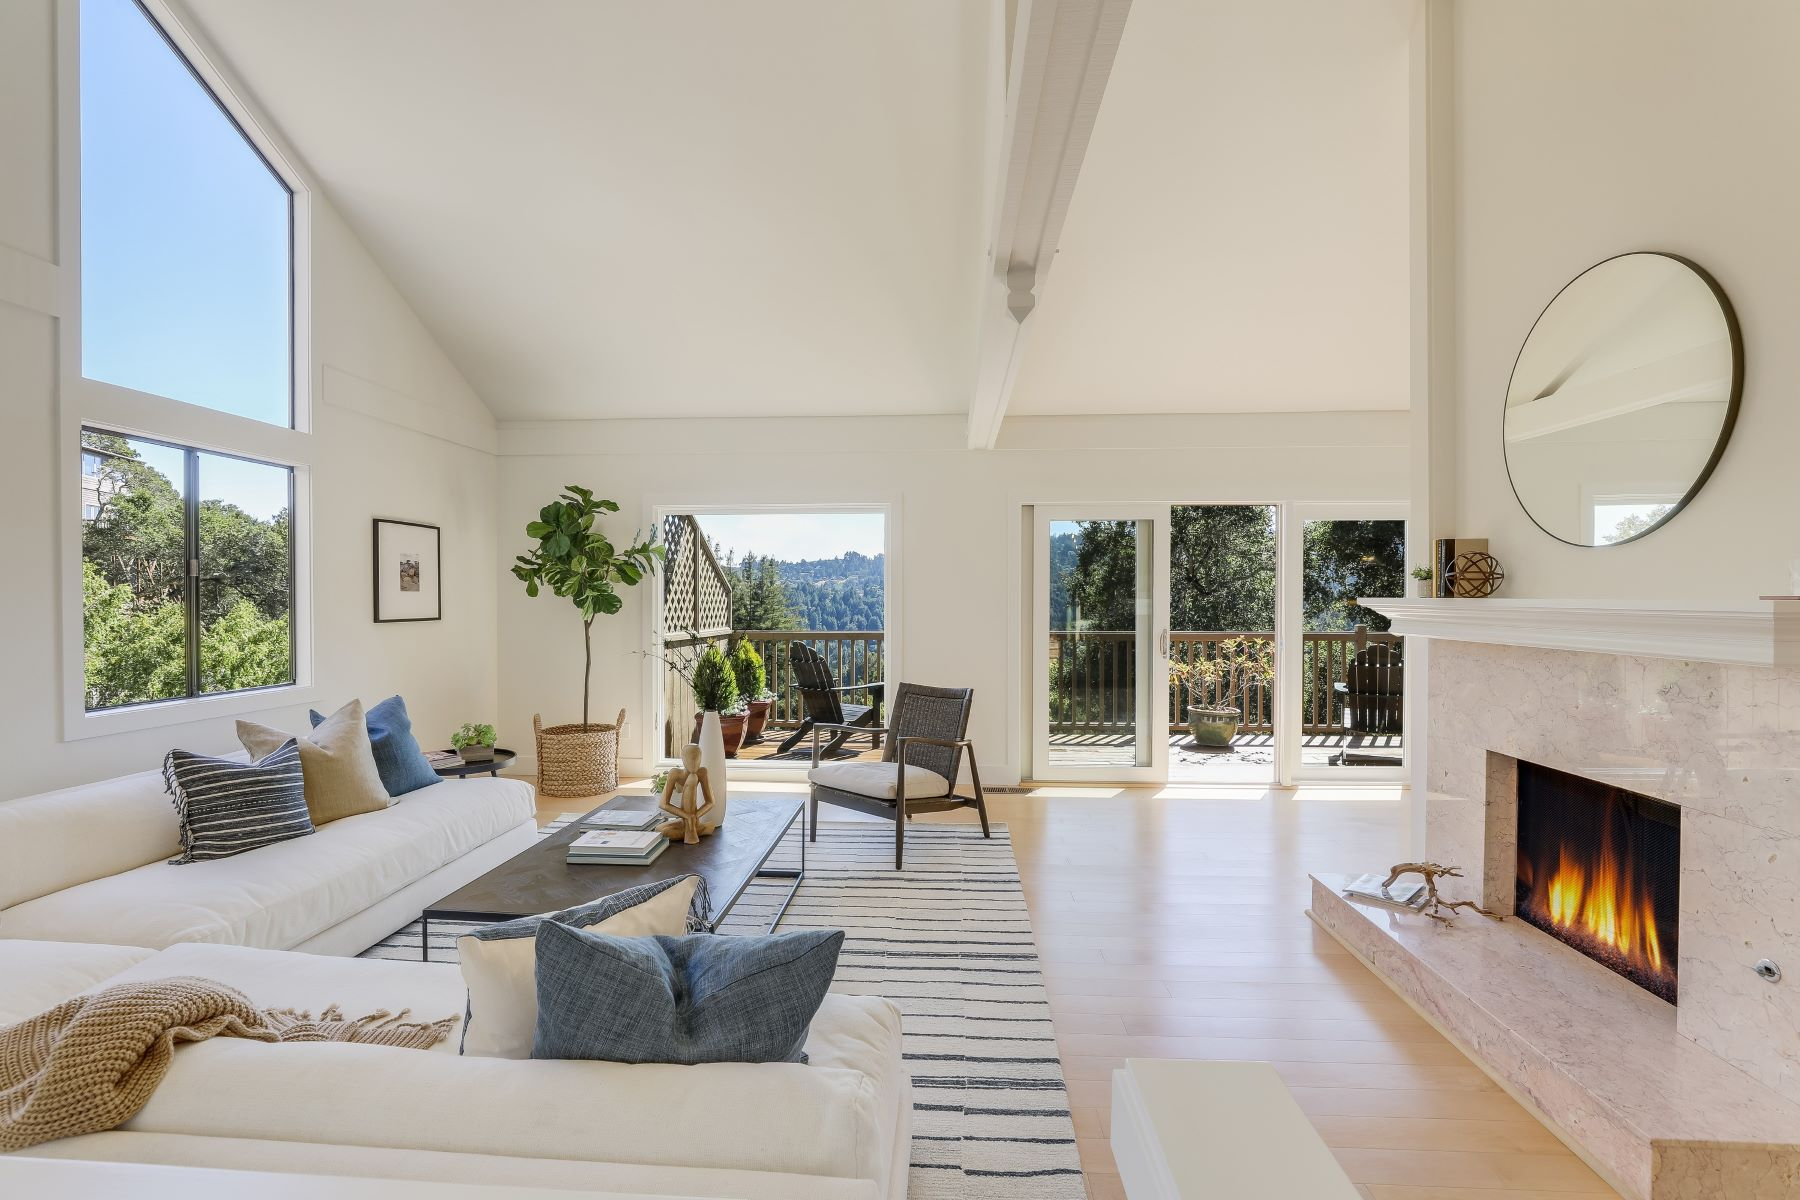 Single Family Homes for Sale at Stunning Mill Valley Contemporary 54 Greenwood Way, Mill Valley, California 94941 United States